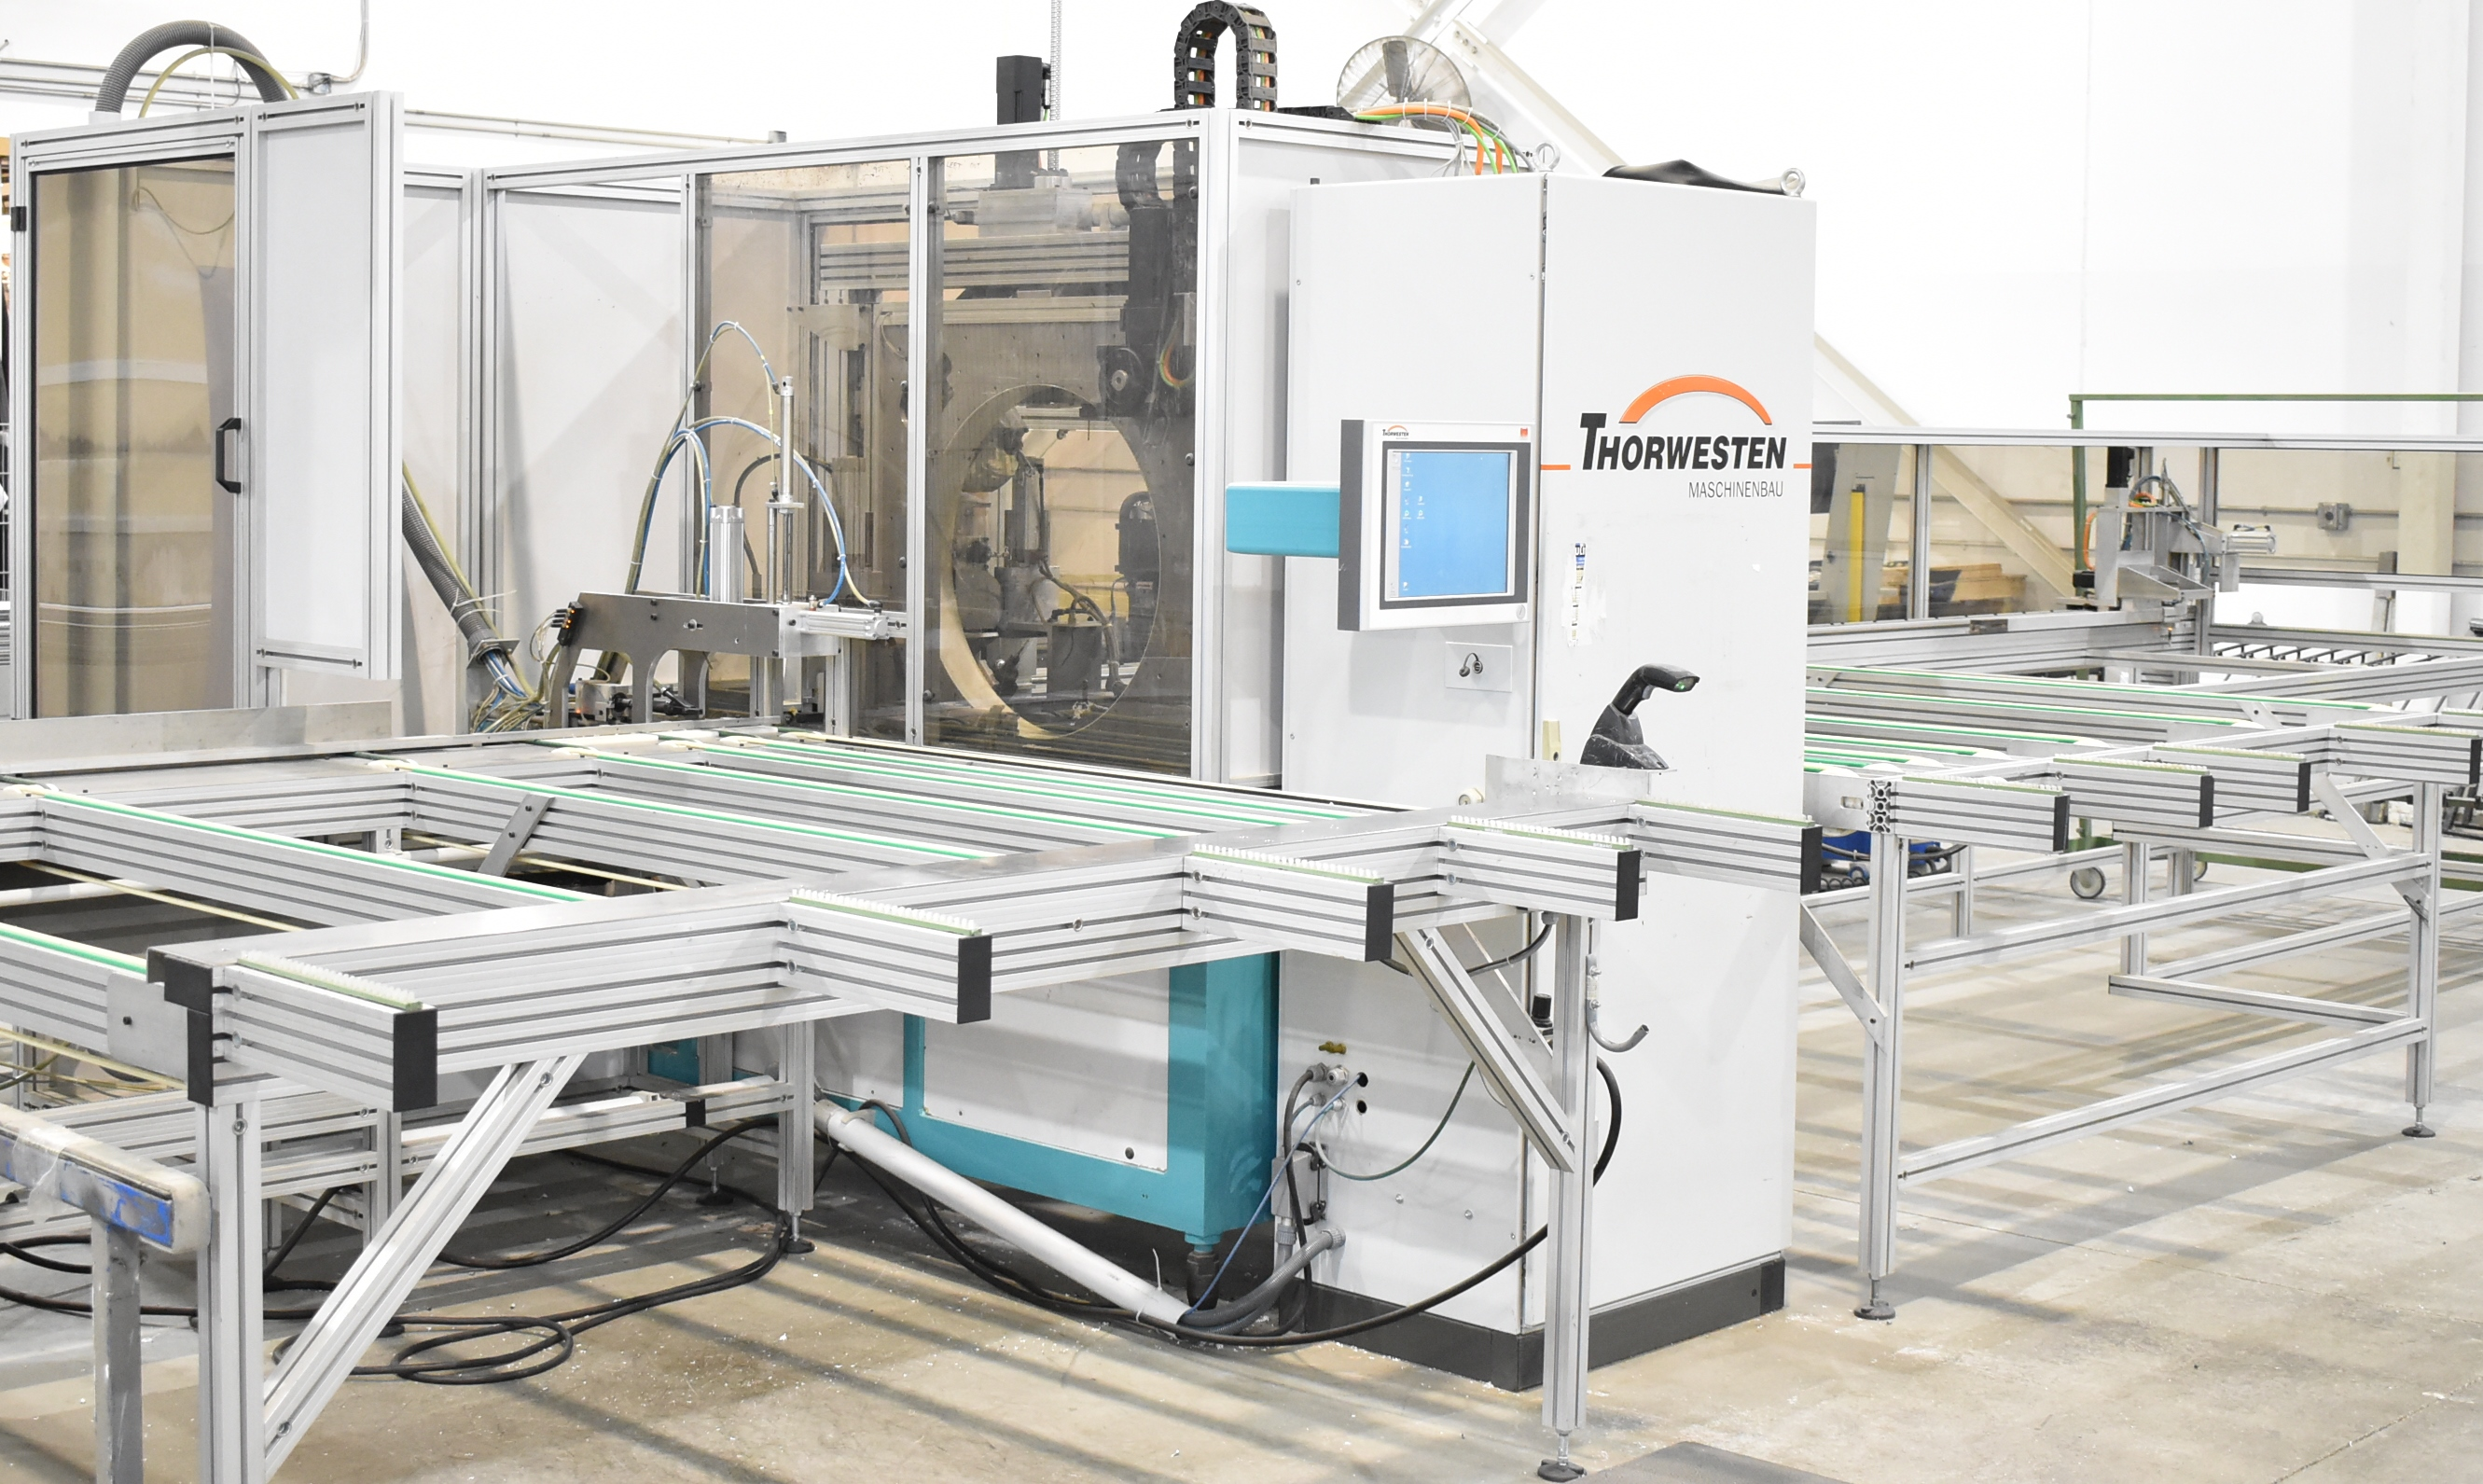 THORWESTERN (2008) PBZ-3 CNC PROFILE MACHINING CENTER WITH WINDOWS PC BASED AR010 TOUCH SCREEN CNC